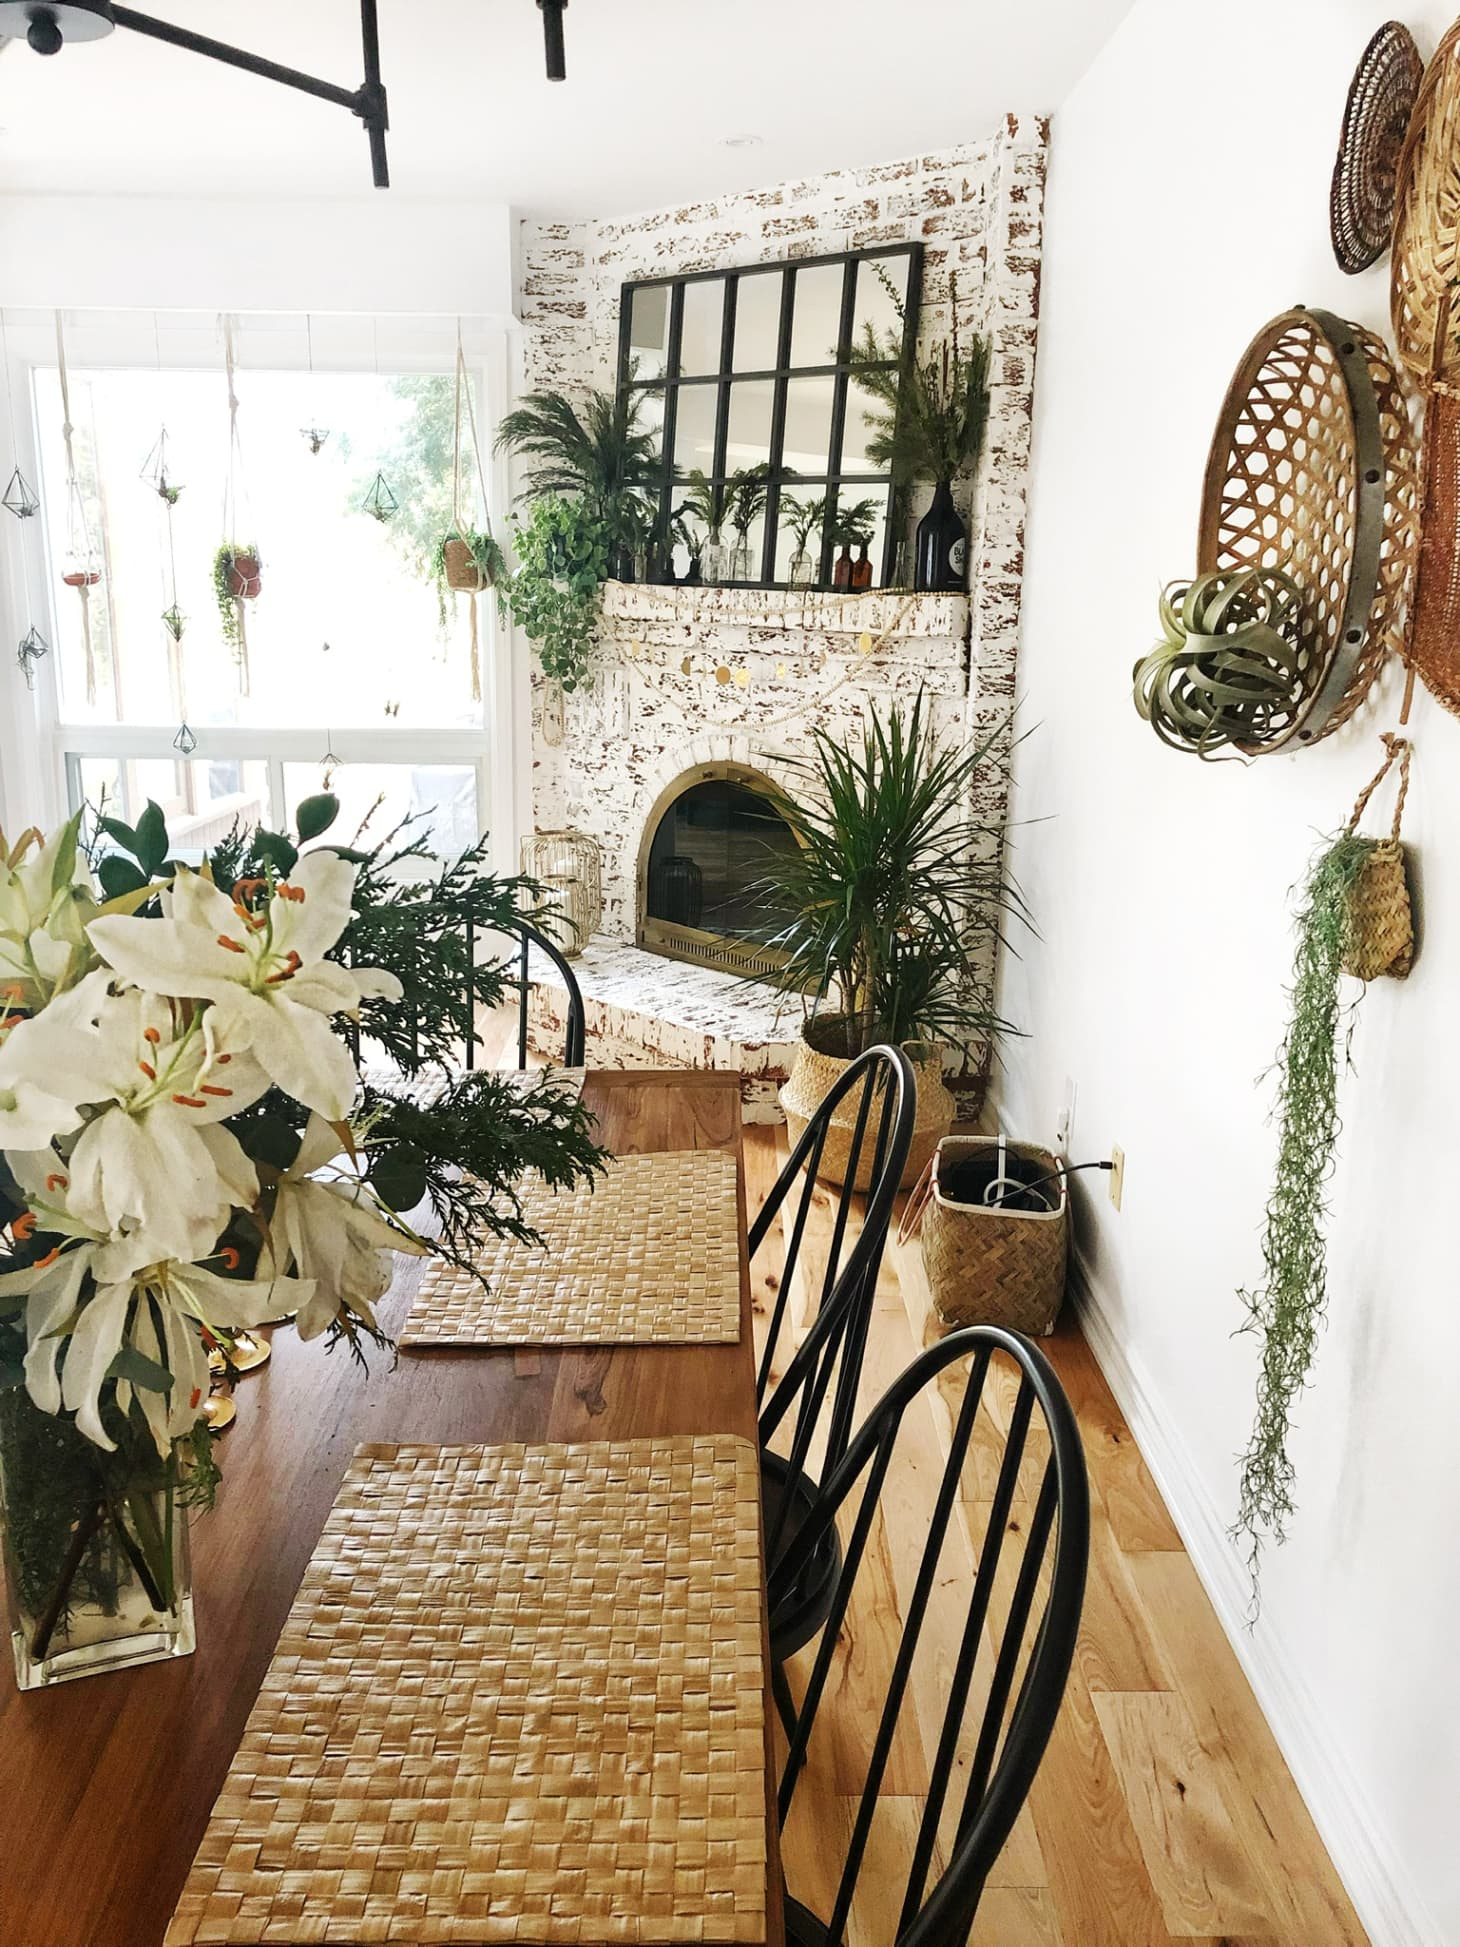 theKwendyHome Bohemian Plant-Filled Home Photos | Apartment ... on plant identification and names, food and names, vegetables and names, greenhouse and names, animals and names, ornamental grasses and names, herbs and names, beans and names, flowers and names, roses and names, cactus and names, pets and names, types of orchids and names, weeds and names, tools and names, wildflowers and names, seeds and names, daylilies and names, clothing and names, furniture and names,